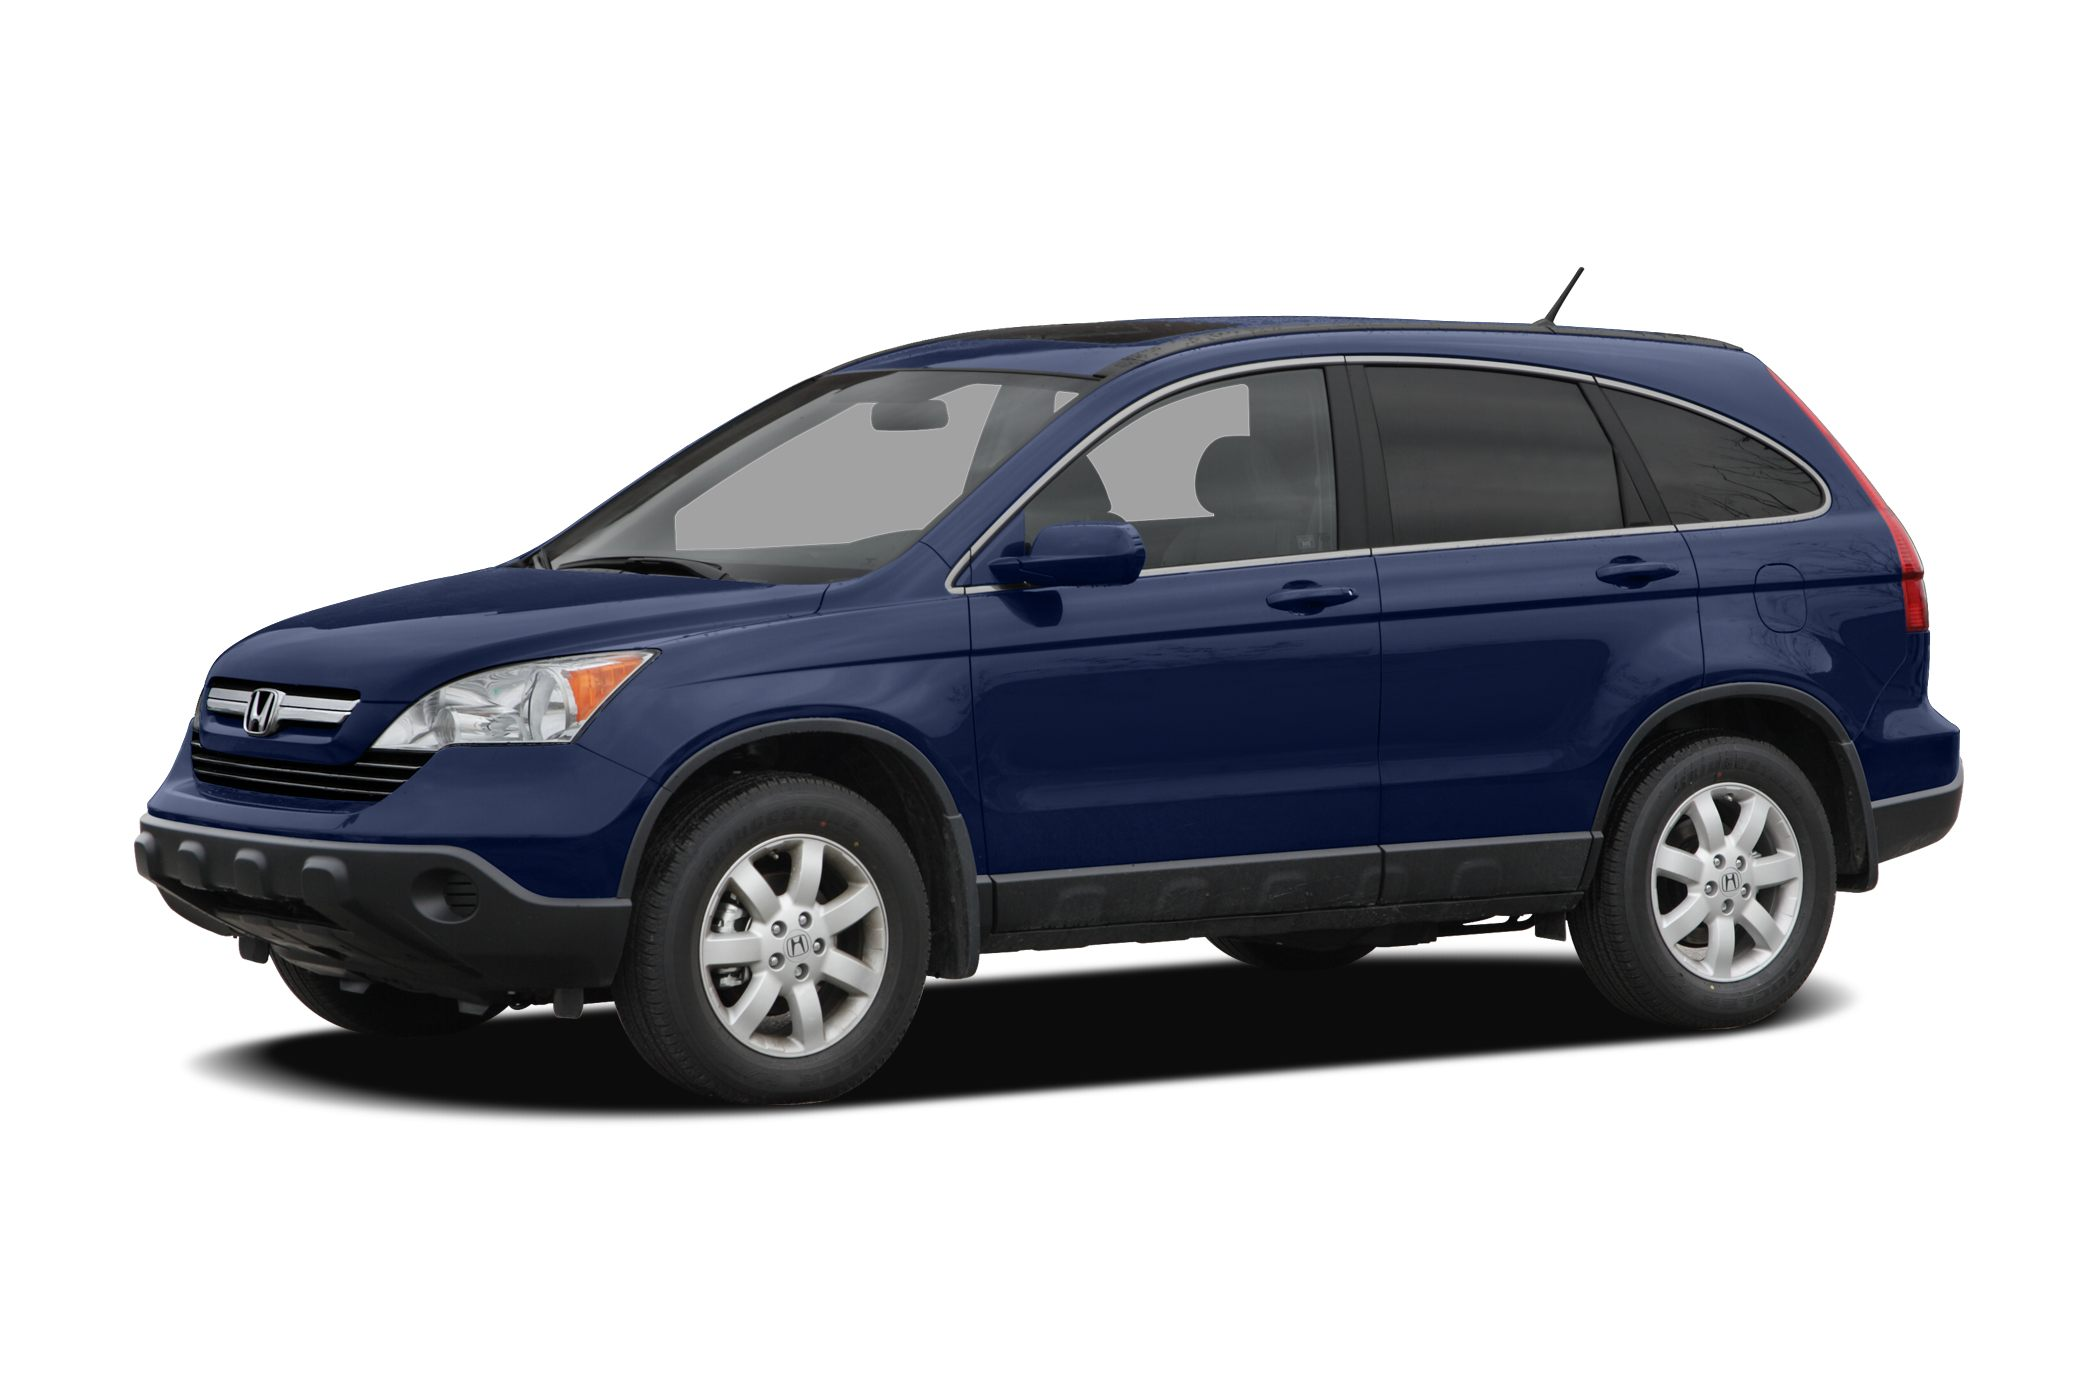 2007 Honda CR-V EX SUV for sale in Bozeman for $12,990 with 130,007 miles.